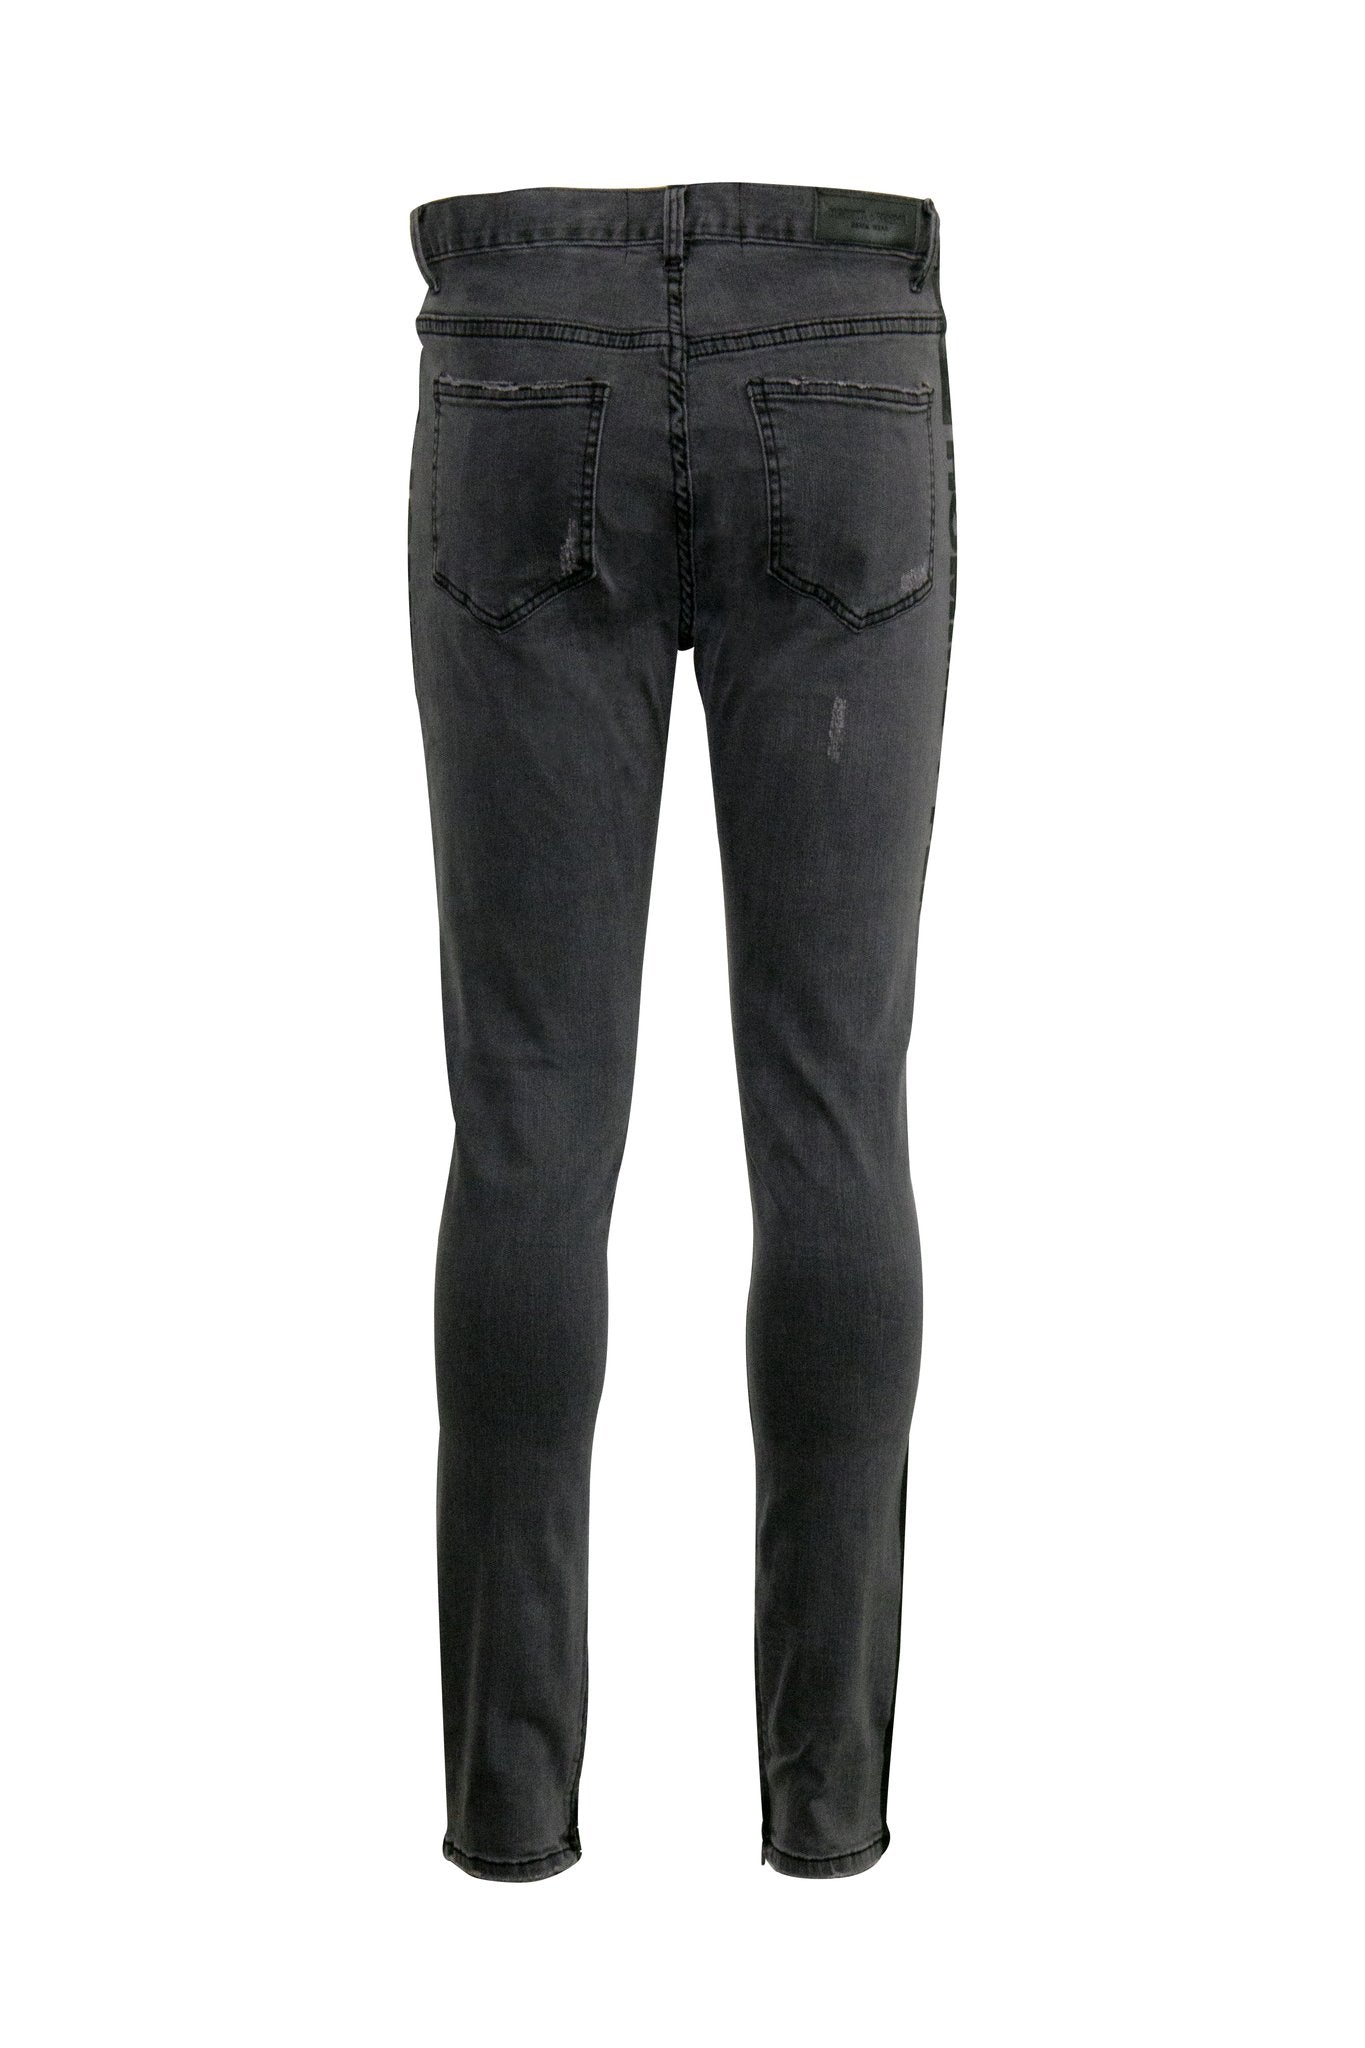 Trademark Denim - Black